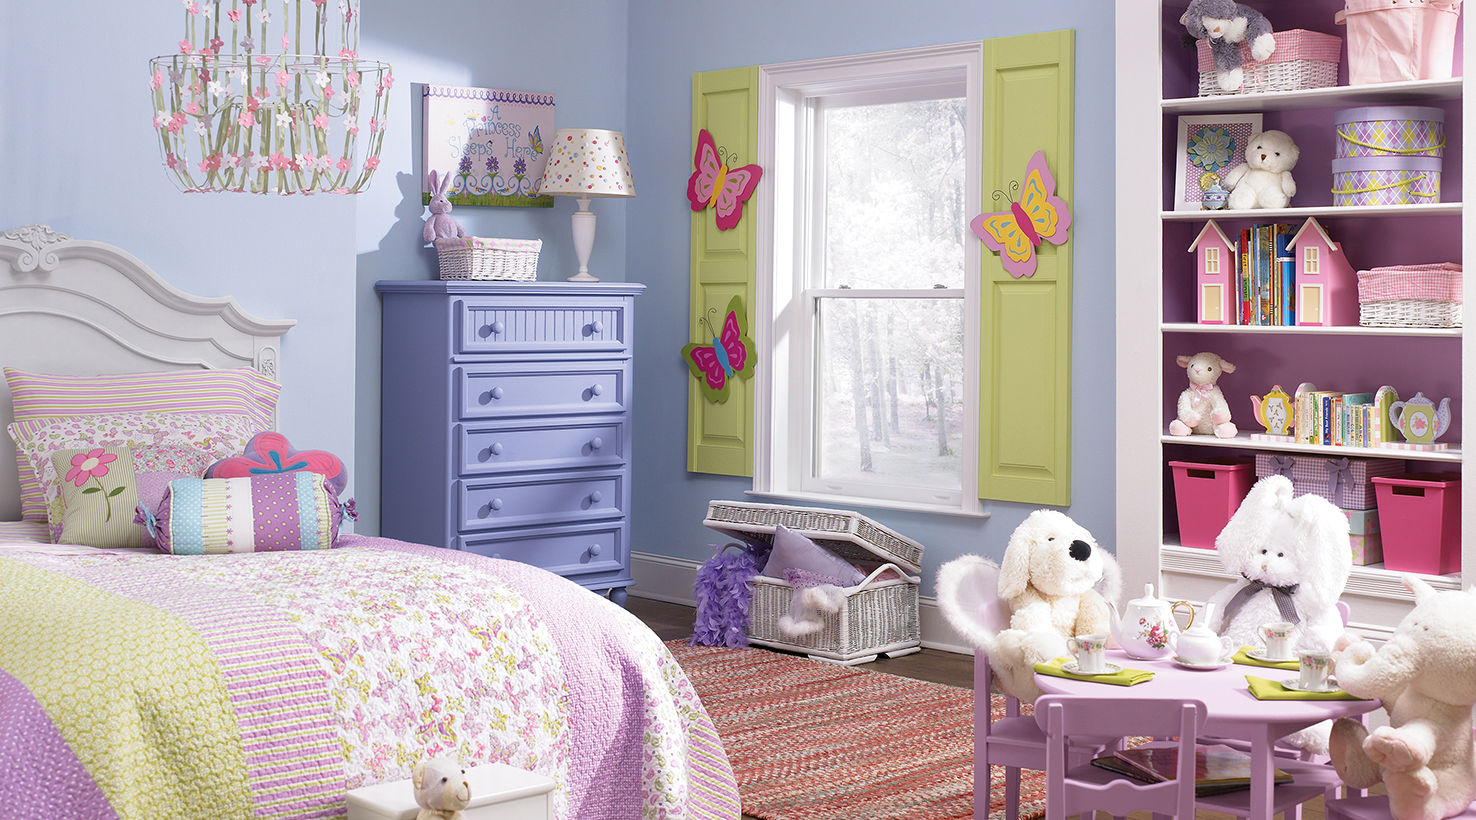 Captivating Kids Rooms Baby Toddler Room Paint Color Ideas Toddler Room Ideas Ikea Toddler Room Ideas Small Rooms houzz-02 Toddler Room Ideas